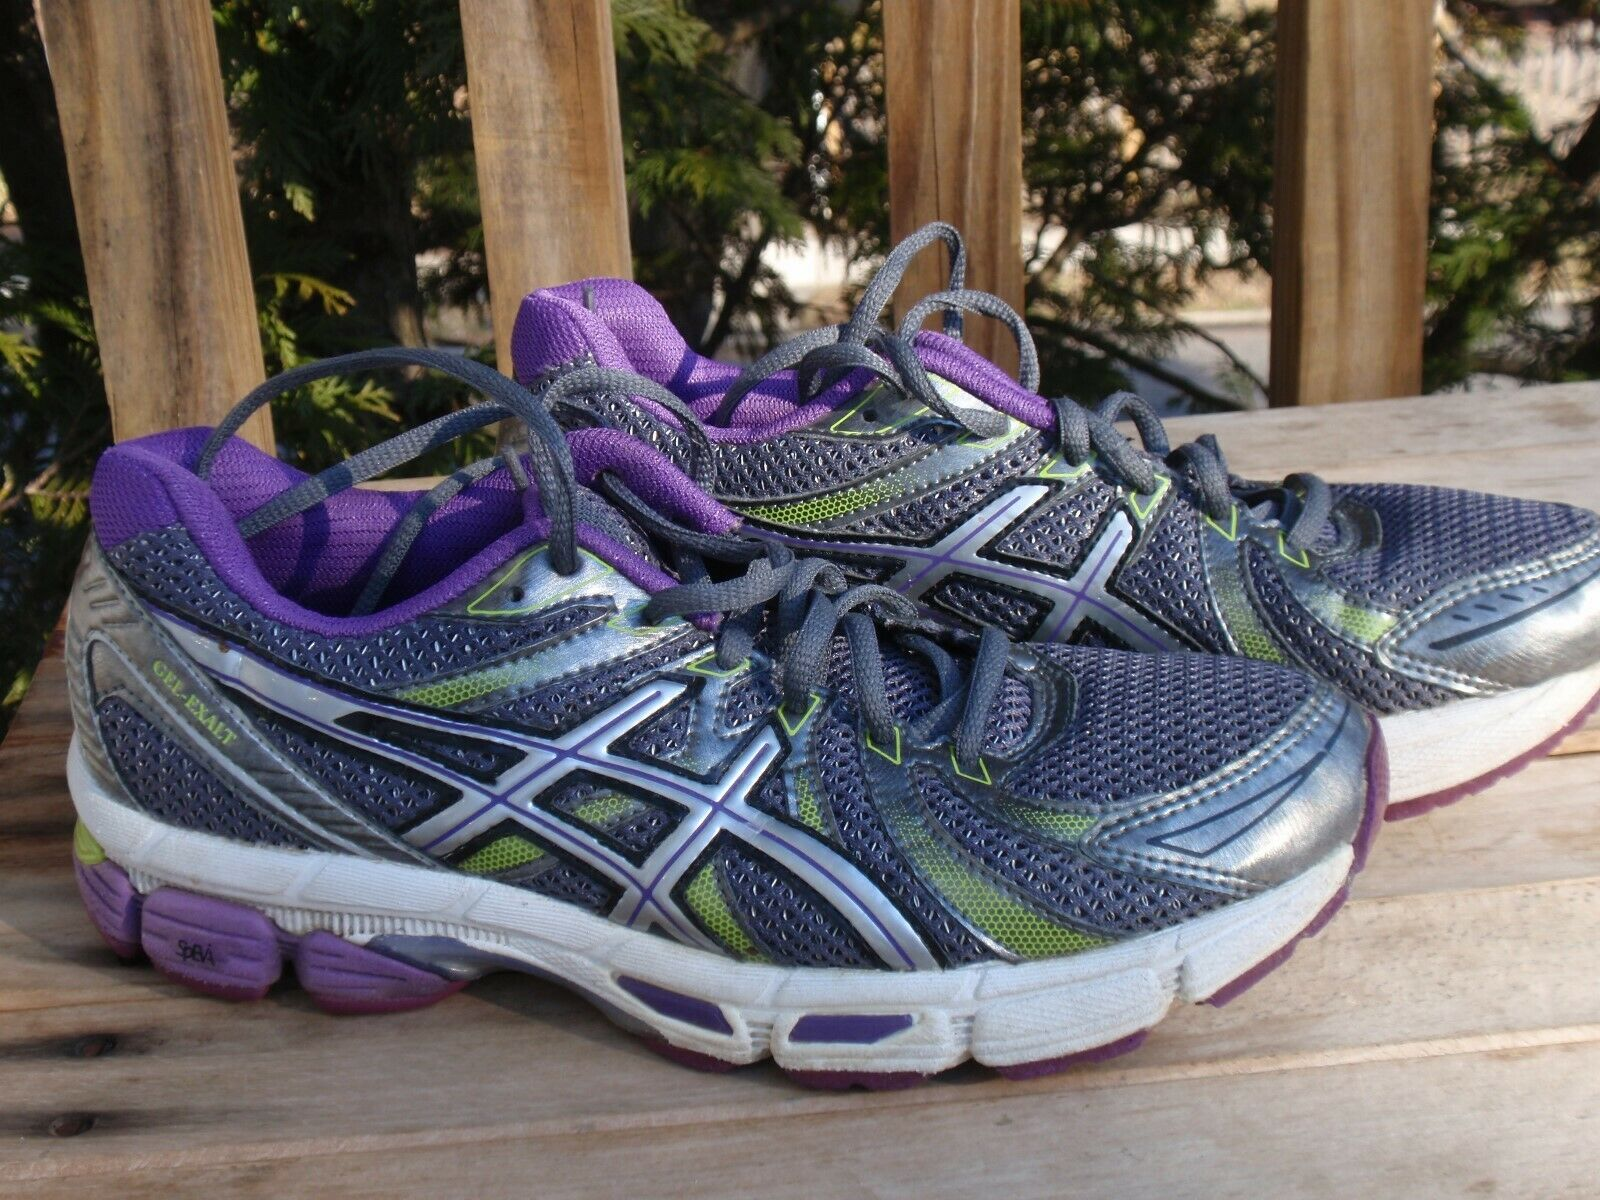 1 PAIR OF ASICS WOMAN'S ATHLETIC SHOES SNEAKERS RUNNING SIZE 7 GEL EXALT